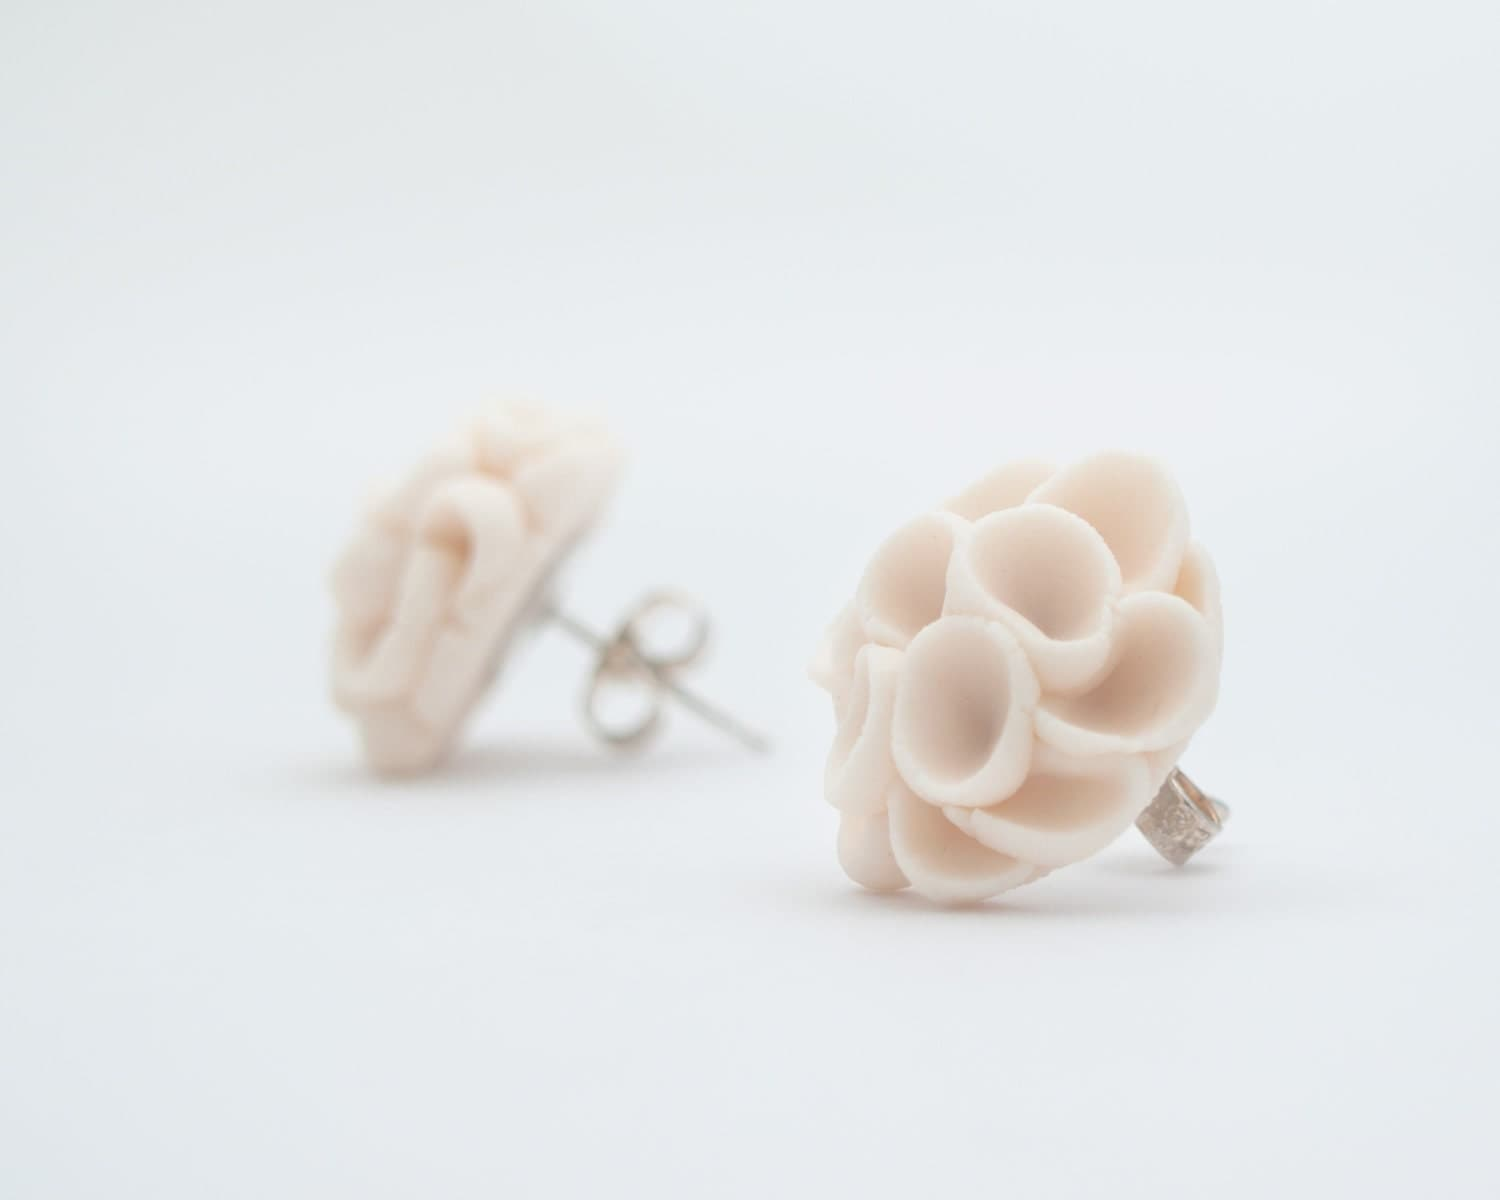 Earrings Studs , Khao-Lak Post Earrings With Porcelain Flowers, Nougat Color